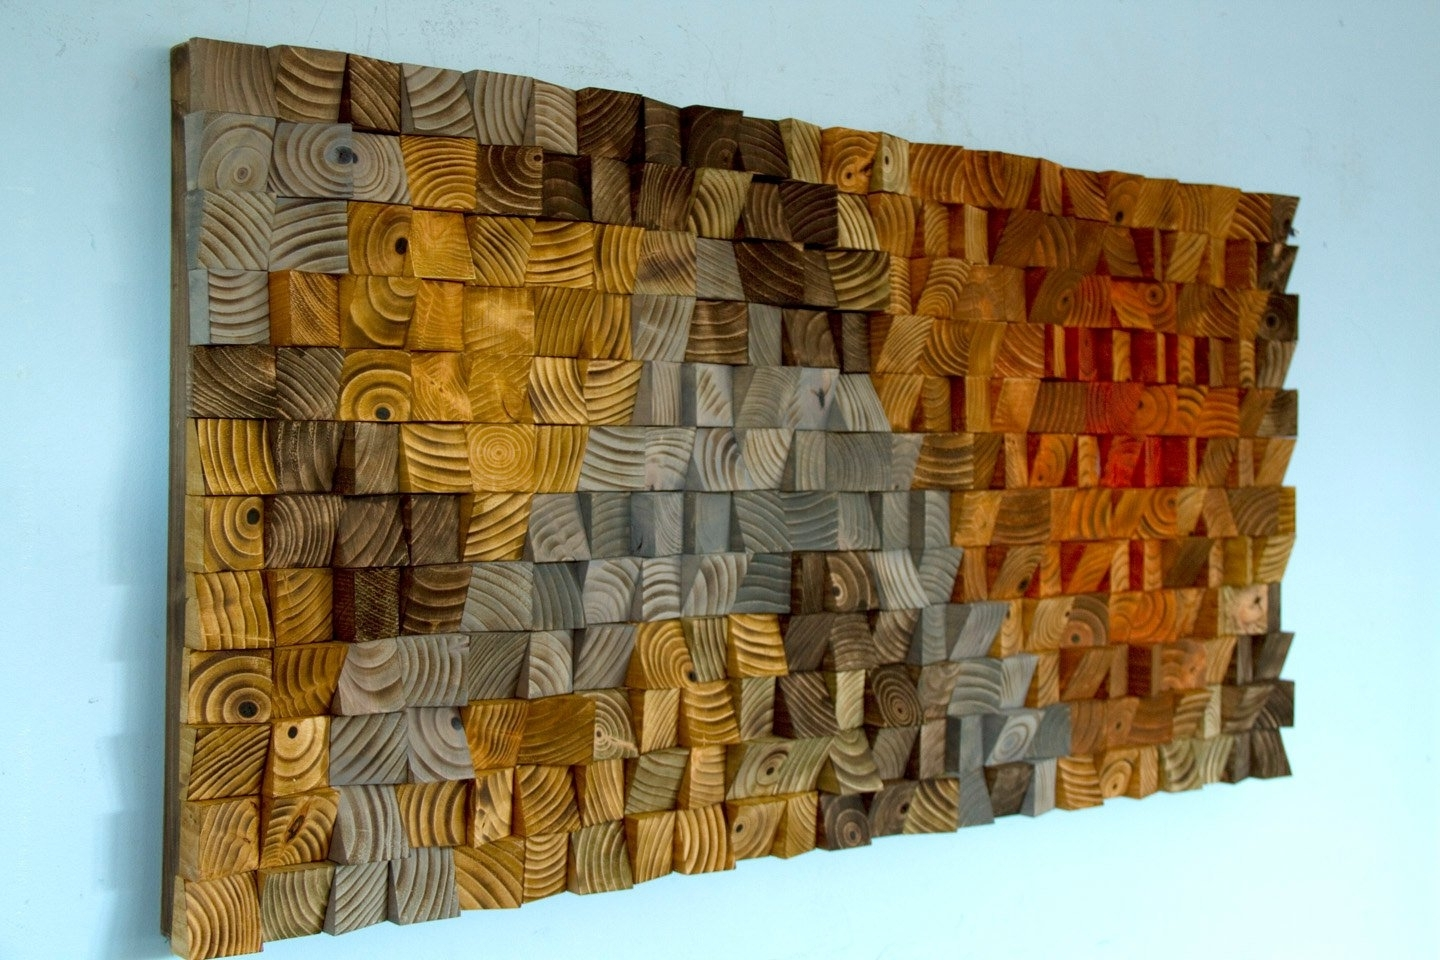 Reclaimed Wood Wall Art Wood Wall Art Sculpture, Wood Art, Wood Wall Within Well Known Wooden Wall Art (View 6 of 15)